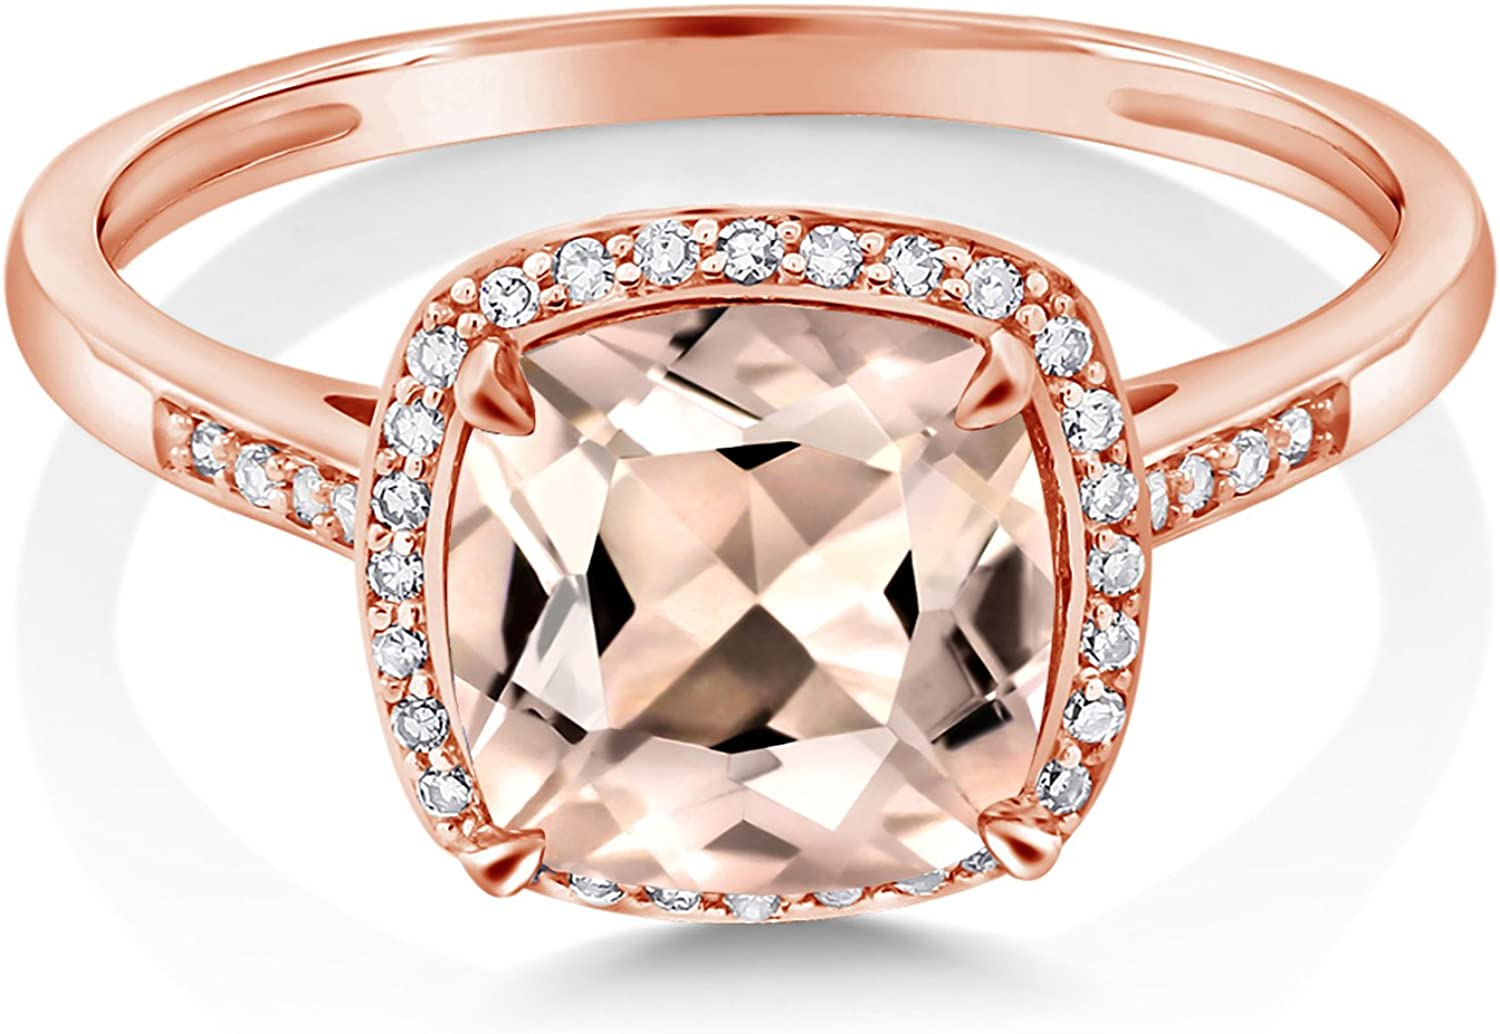 925 Sterling Silver and 10K Rose Gold Ring 1.88 Ct Cushion Peach Morganite